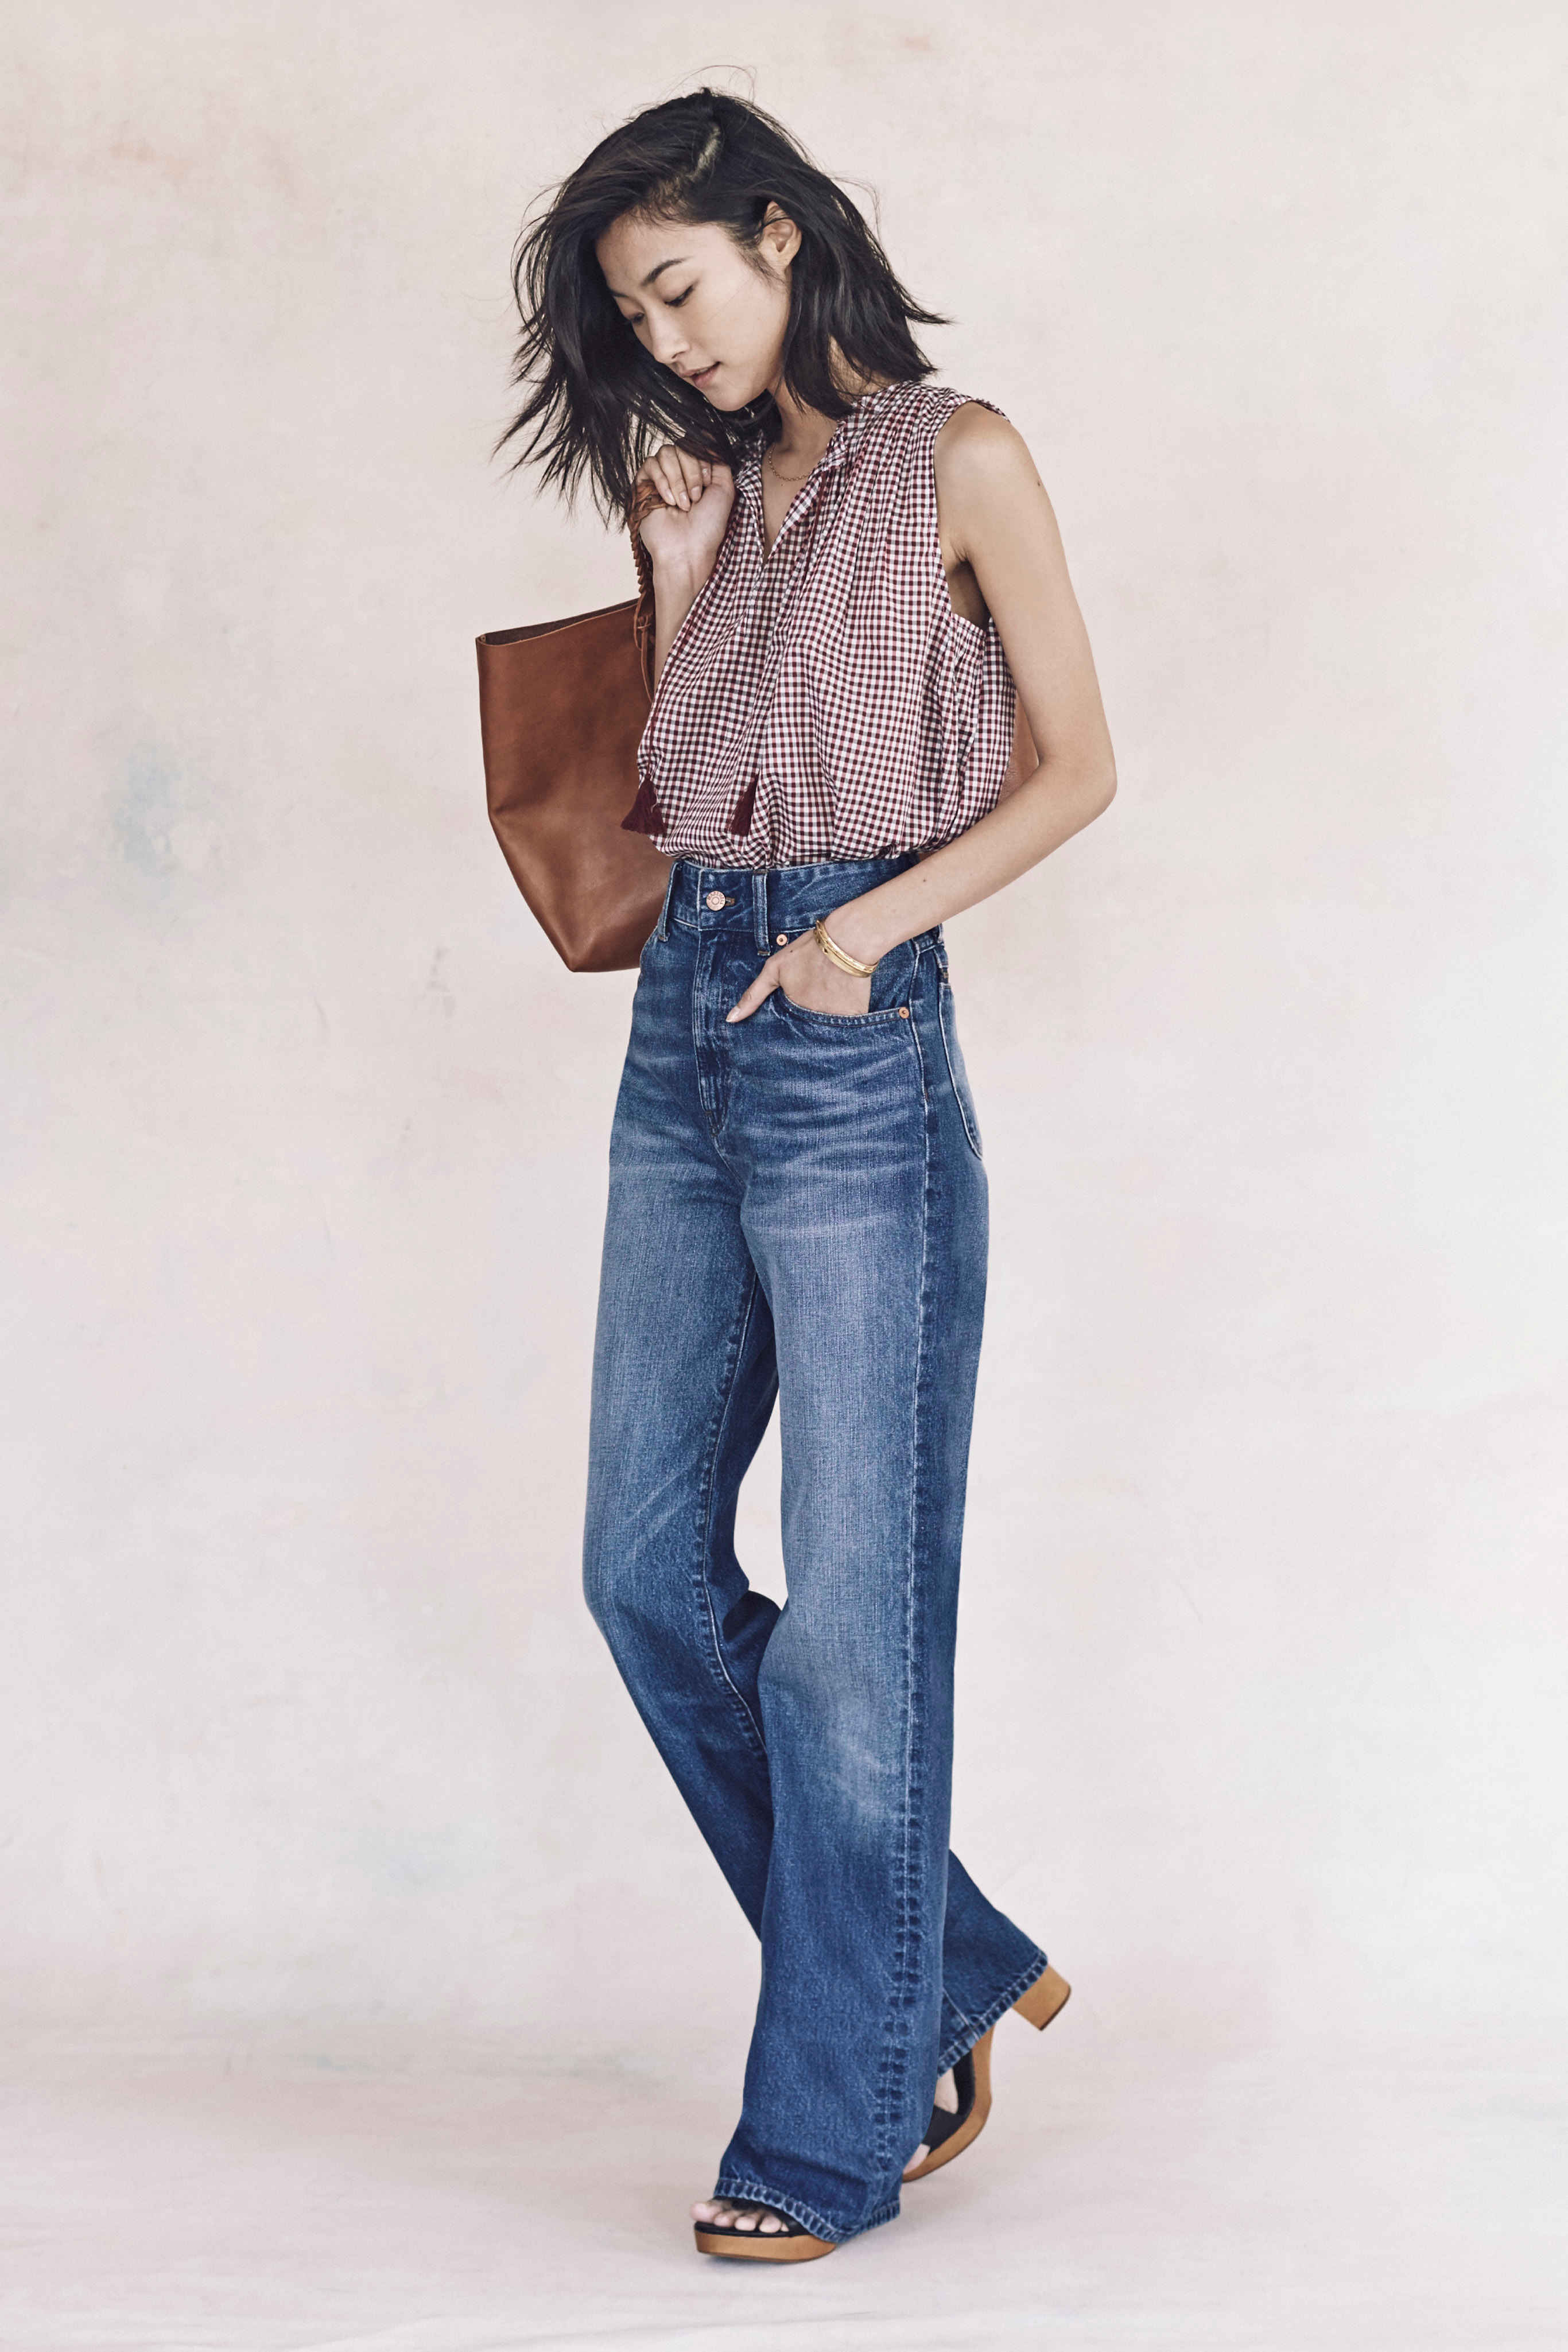 Madewell just released their spring 2016 collection, and trust me, you are going to be clamoring for every single piece. It's just so wearable. - Madewell Spring 2016 Lookbook - Wide Leg Denim